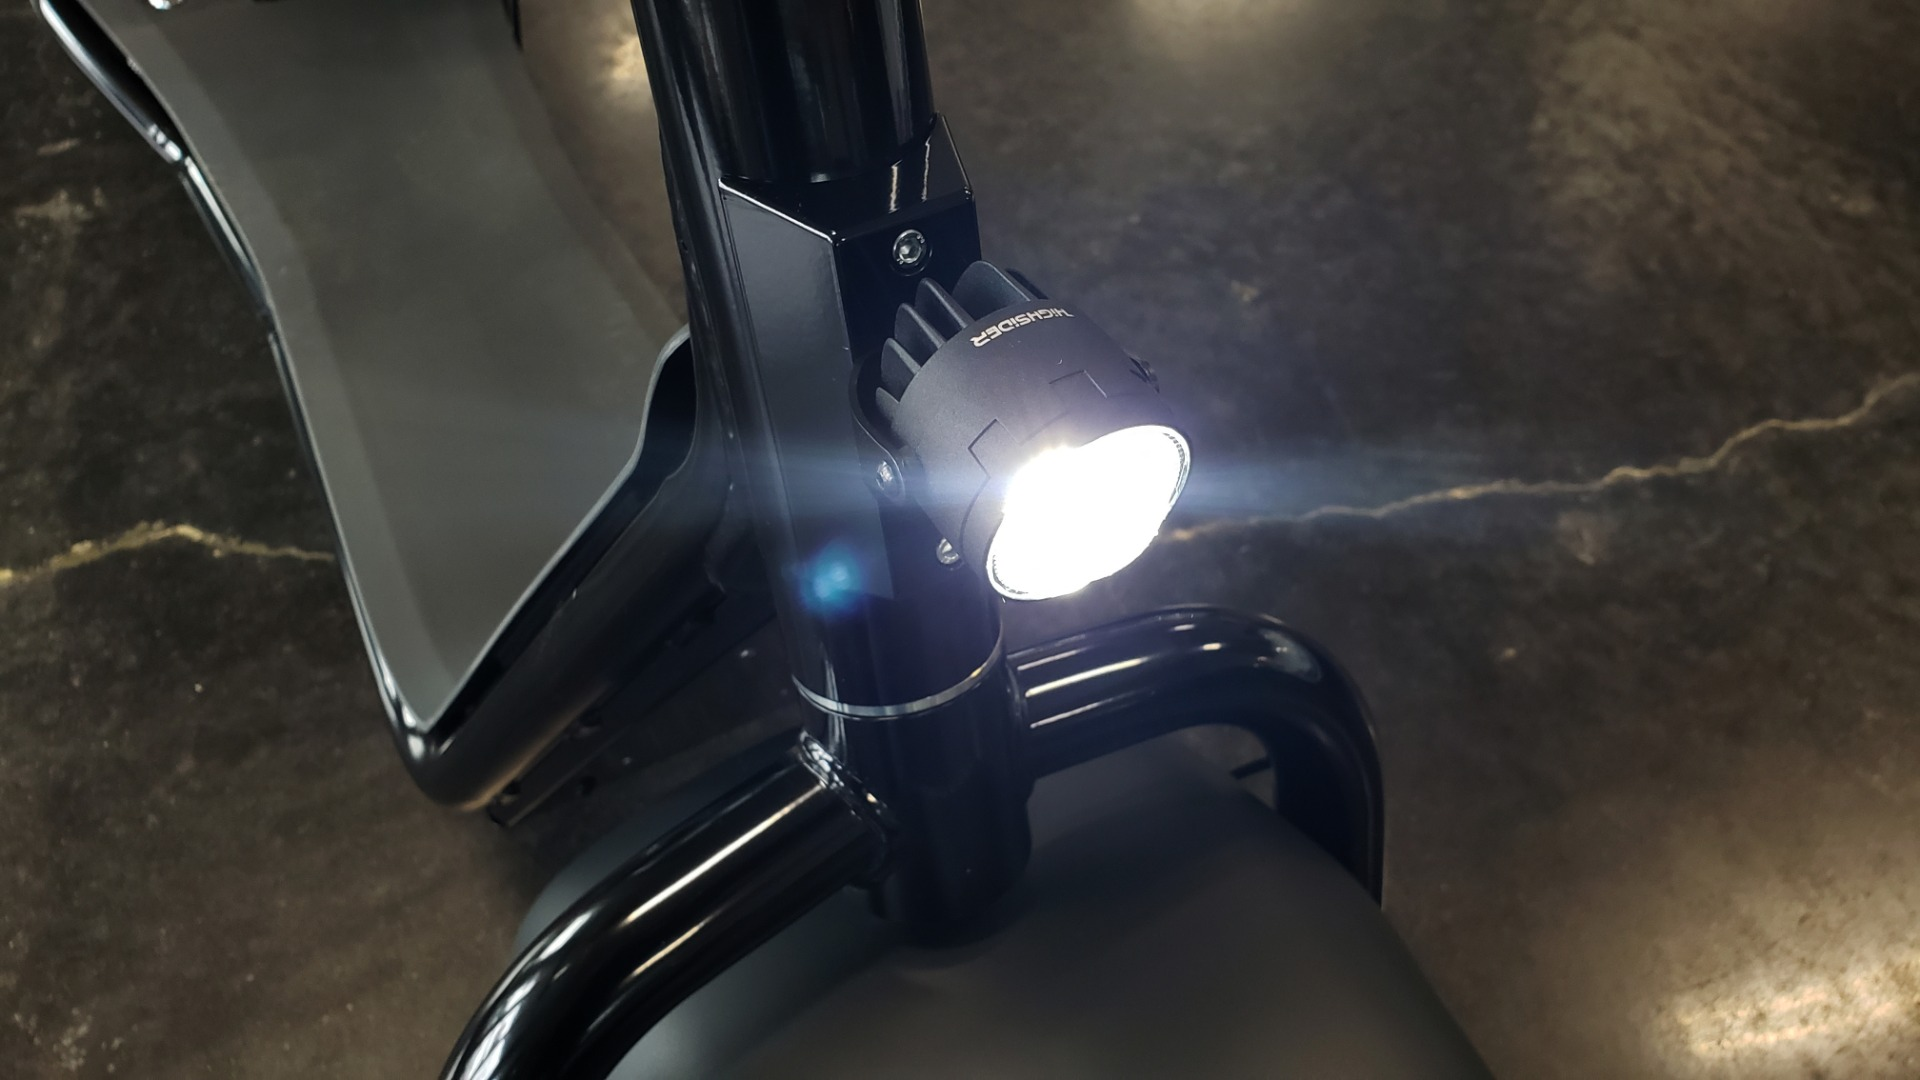 Used 2018 SCROOSER ELECTRIC SCOOTER SELF BALANCED / PITCH BLACK / 15.5 MPH / 34 MI RANGE for sale Sold at Formula Imports in Charlotte NC 28227 6